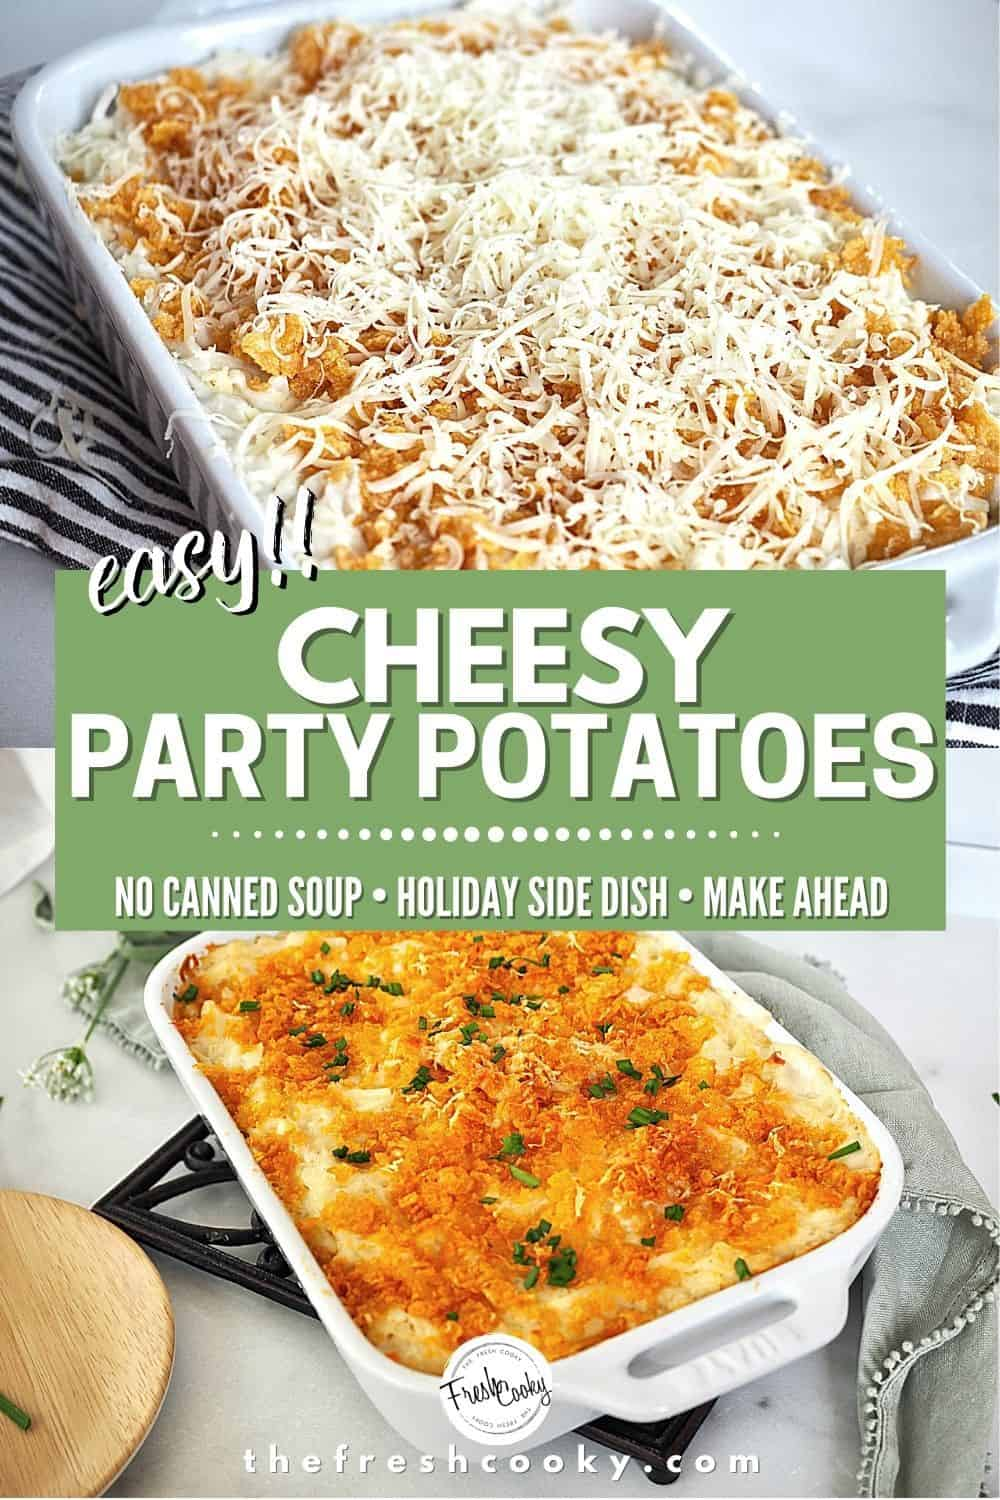 These are THOSE easy cheesy potatoes, the best potato casserole from The Fresh Cooky. Whether you call them Funeral Potatoes, or Party Potatoes you should make these easy, no canned soup potato side dish. Make ahead, gluten free options and freezer friendly. Perfect side dish for Christmas, Thanksgiving, Easter or potluck. #thefreshcooky #cheesyfuneralpotatoes #funeralpotatoes #potatocasserole via @thefreshcooky